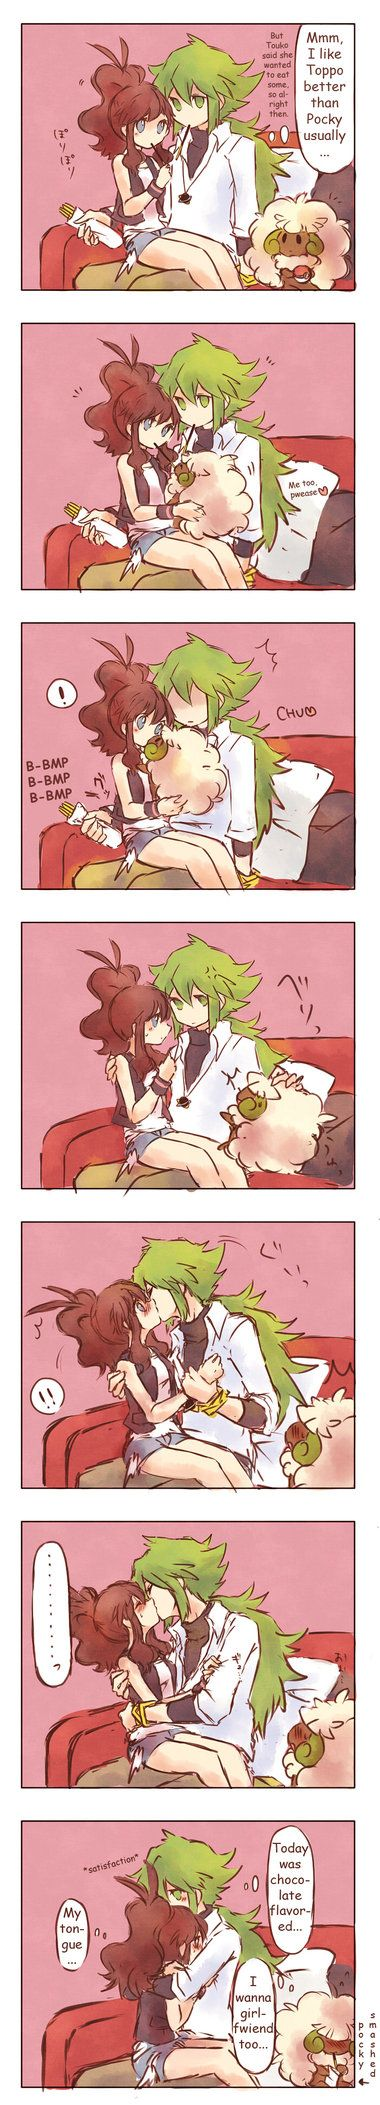 Hehe jealousy ;3 they are so cute together though I have to admit that